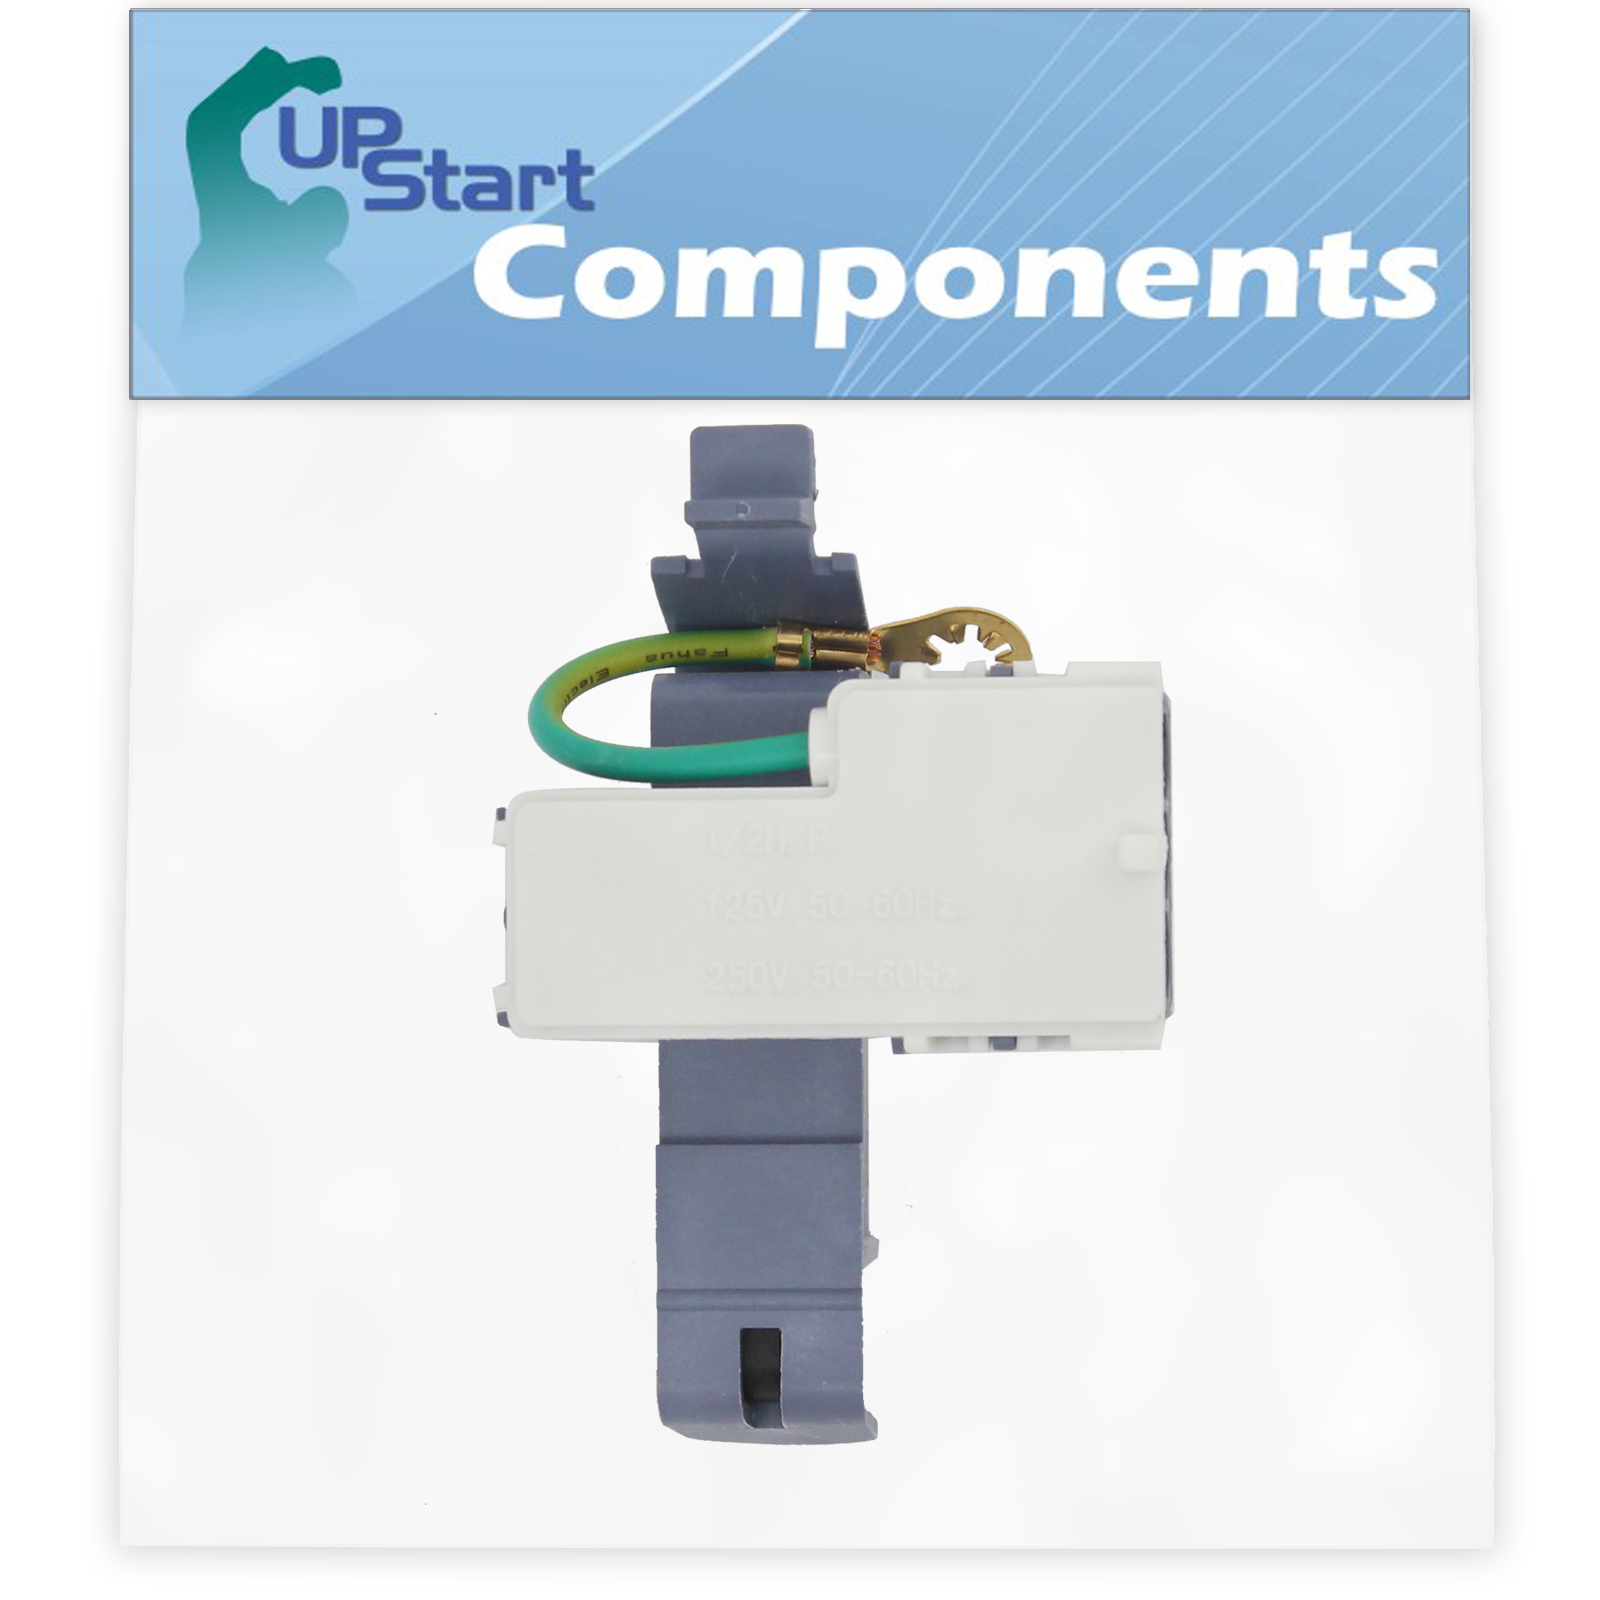 8318084 Washer Lid Switch Replacement for Maytag MTW5870TW0 Washer UpStart Components Brand Compatible with WP8318084 Washer Lid Switch